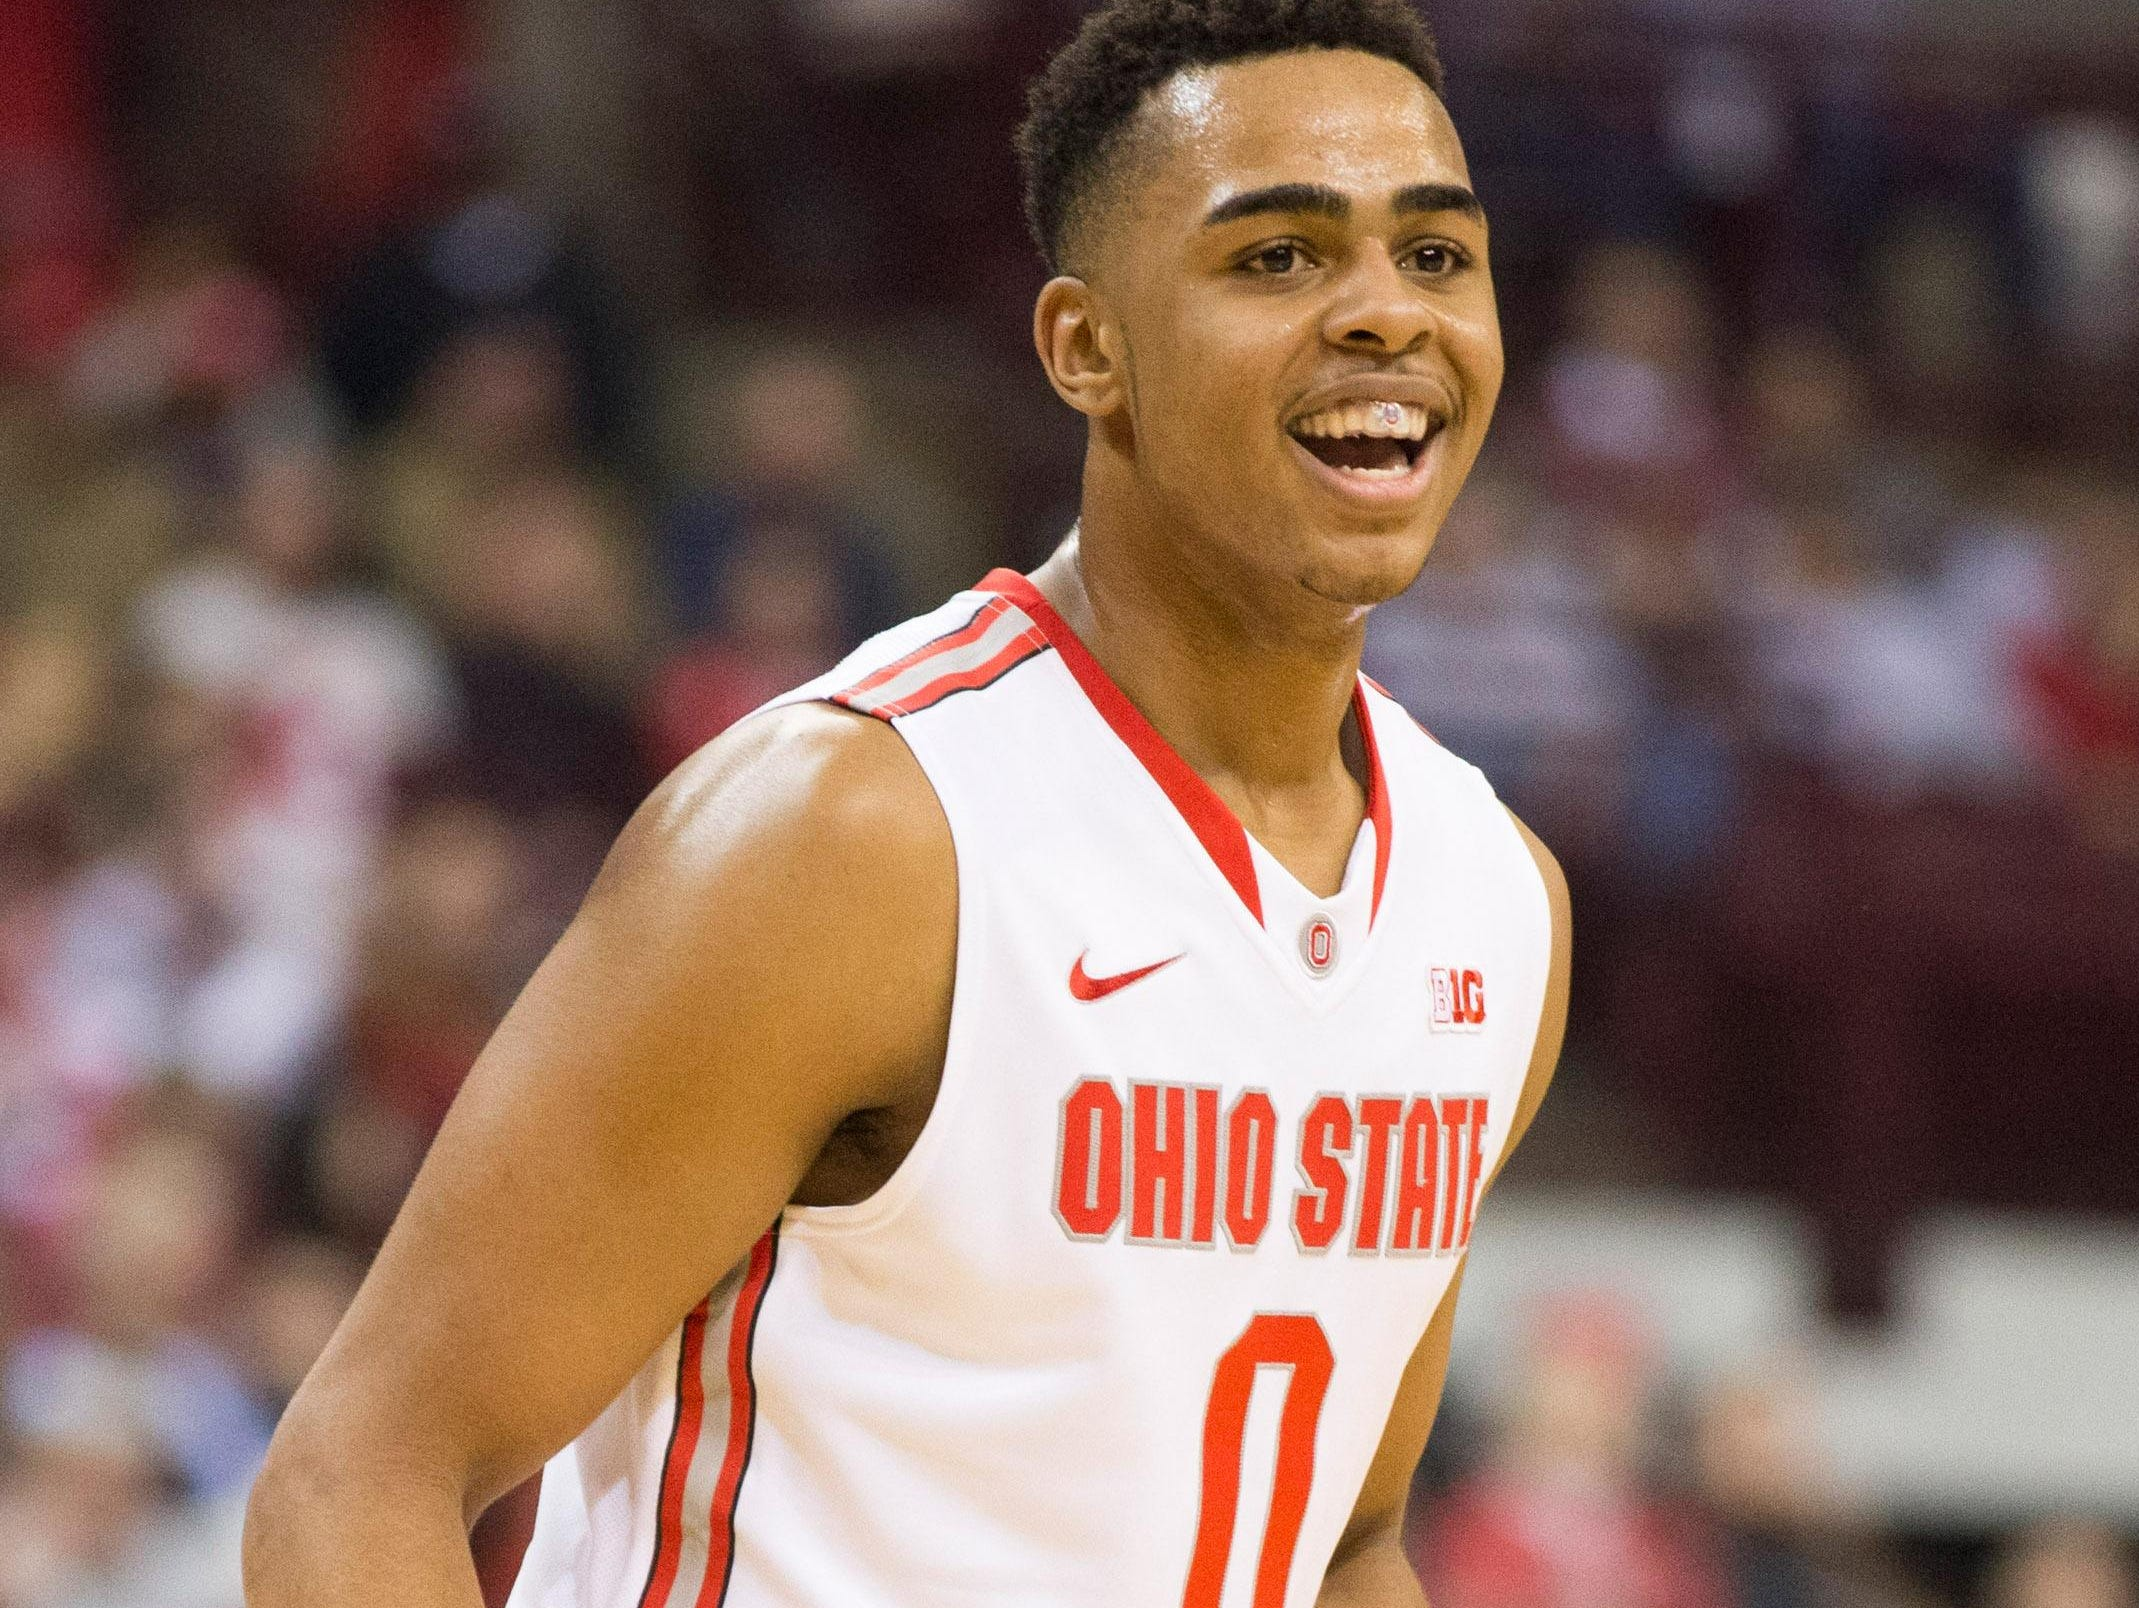 Ohio State Buckeyes guard D'Angelo Russell reacts after hitting a 3-point shot against the Marquette this past season. The Louisville native is set to become an early selection in Thursday's NBA draft.